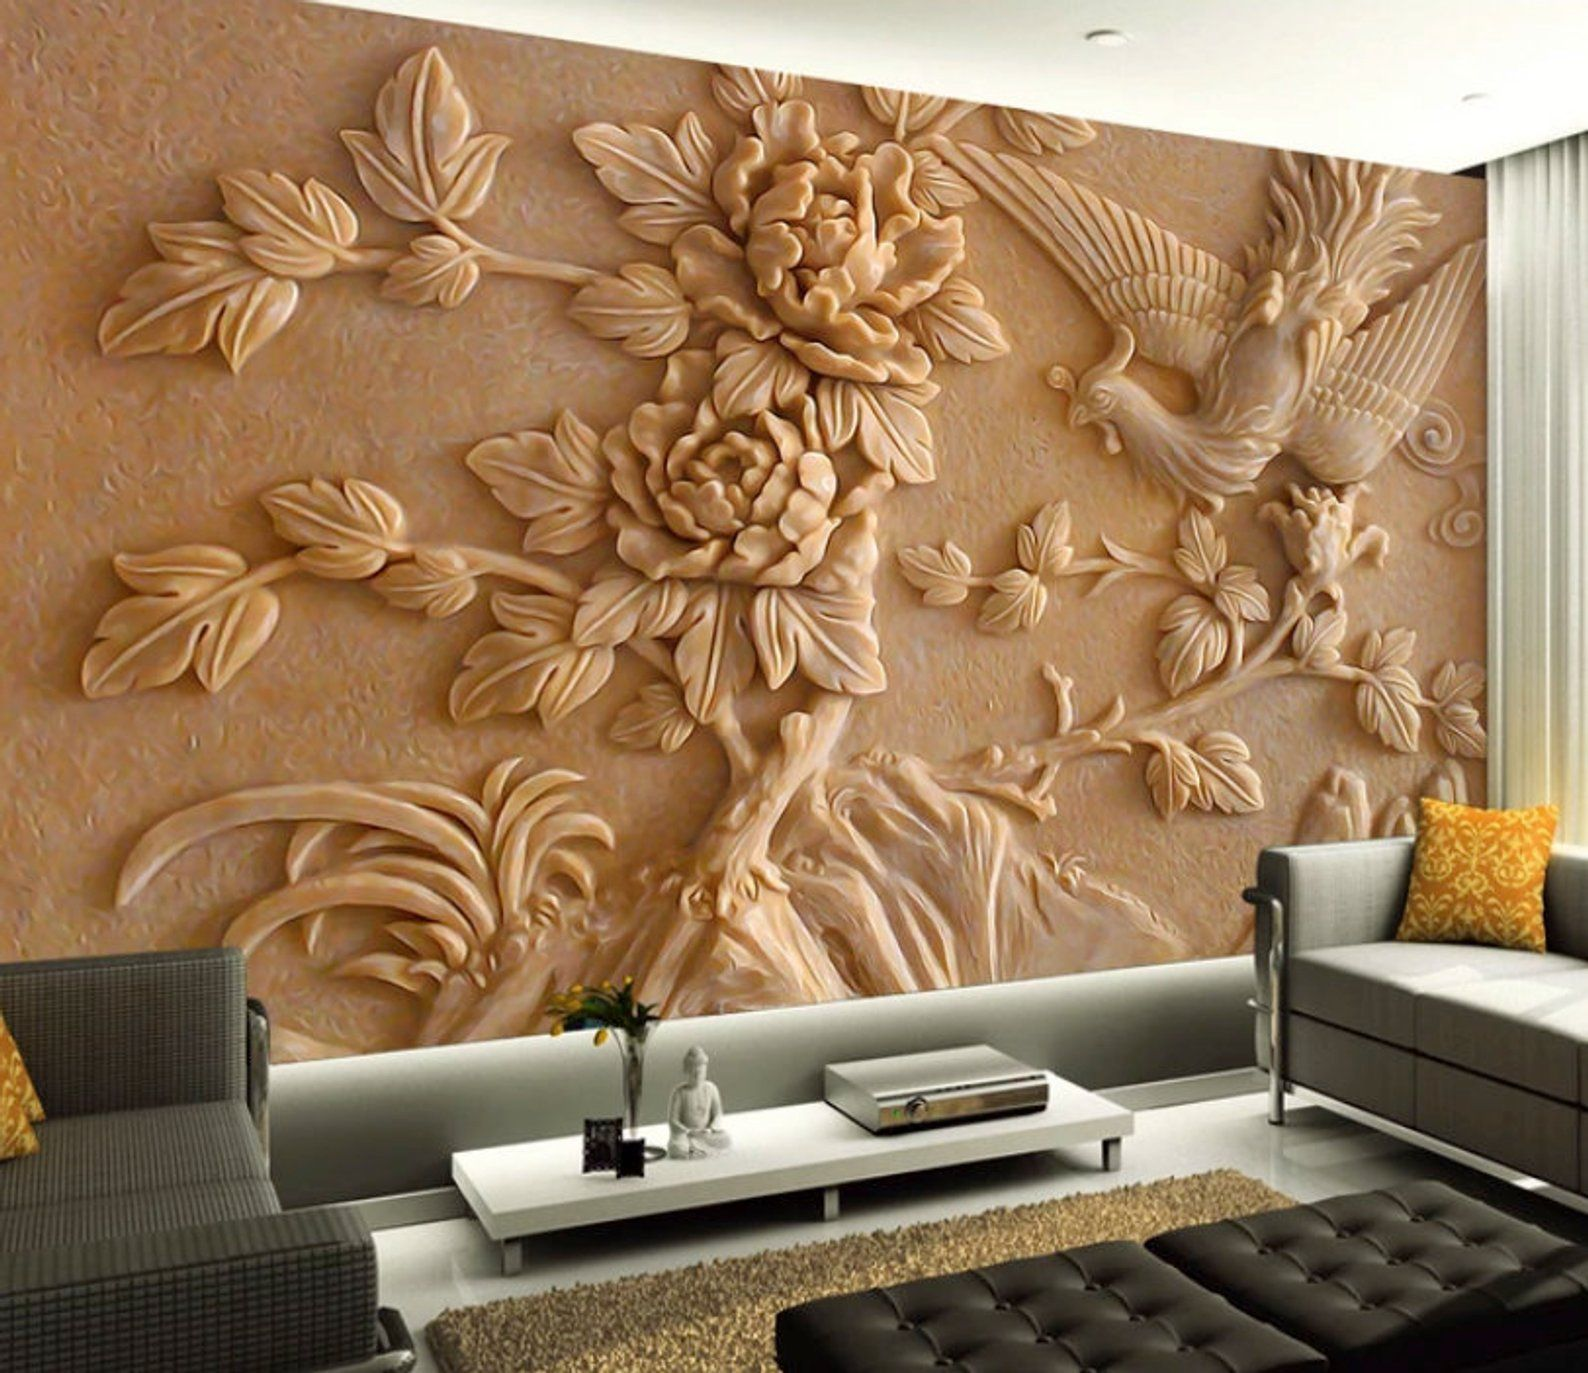 3D Embossed Floral Wallpaper Cement ...